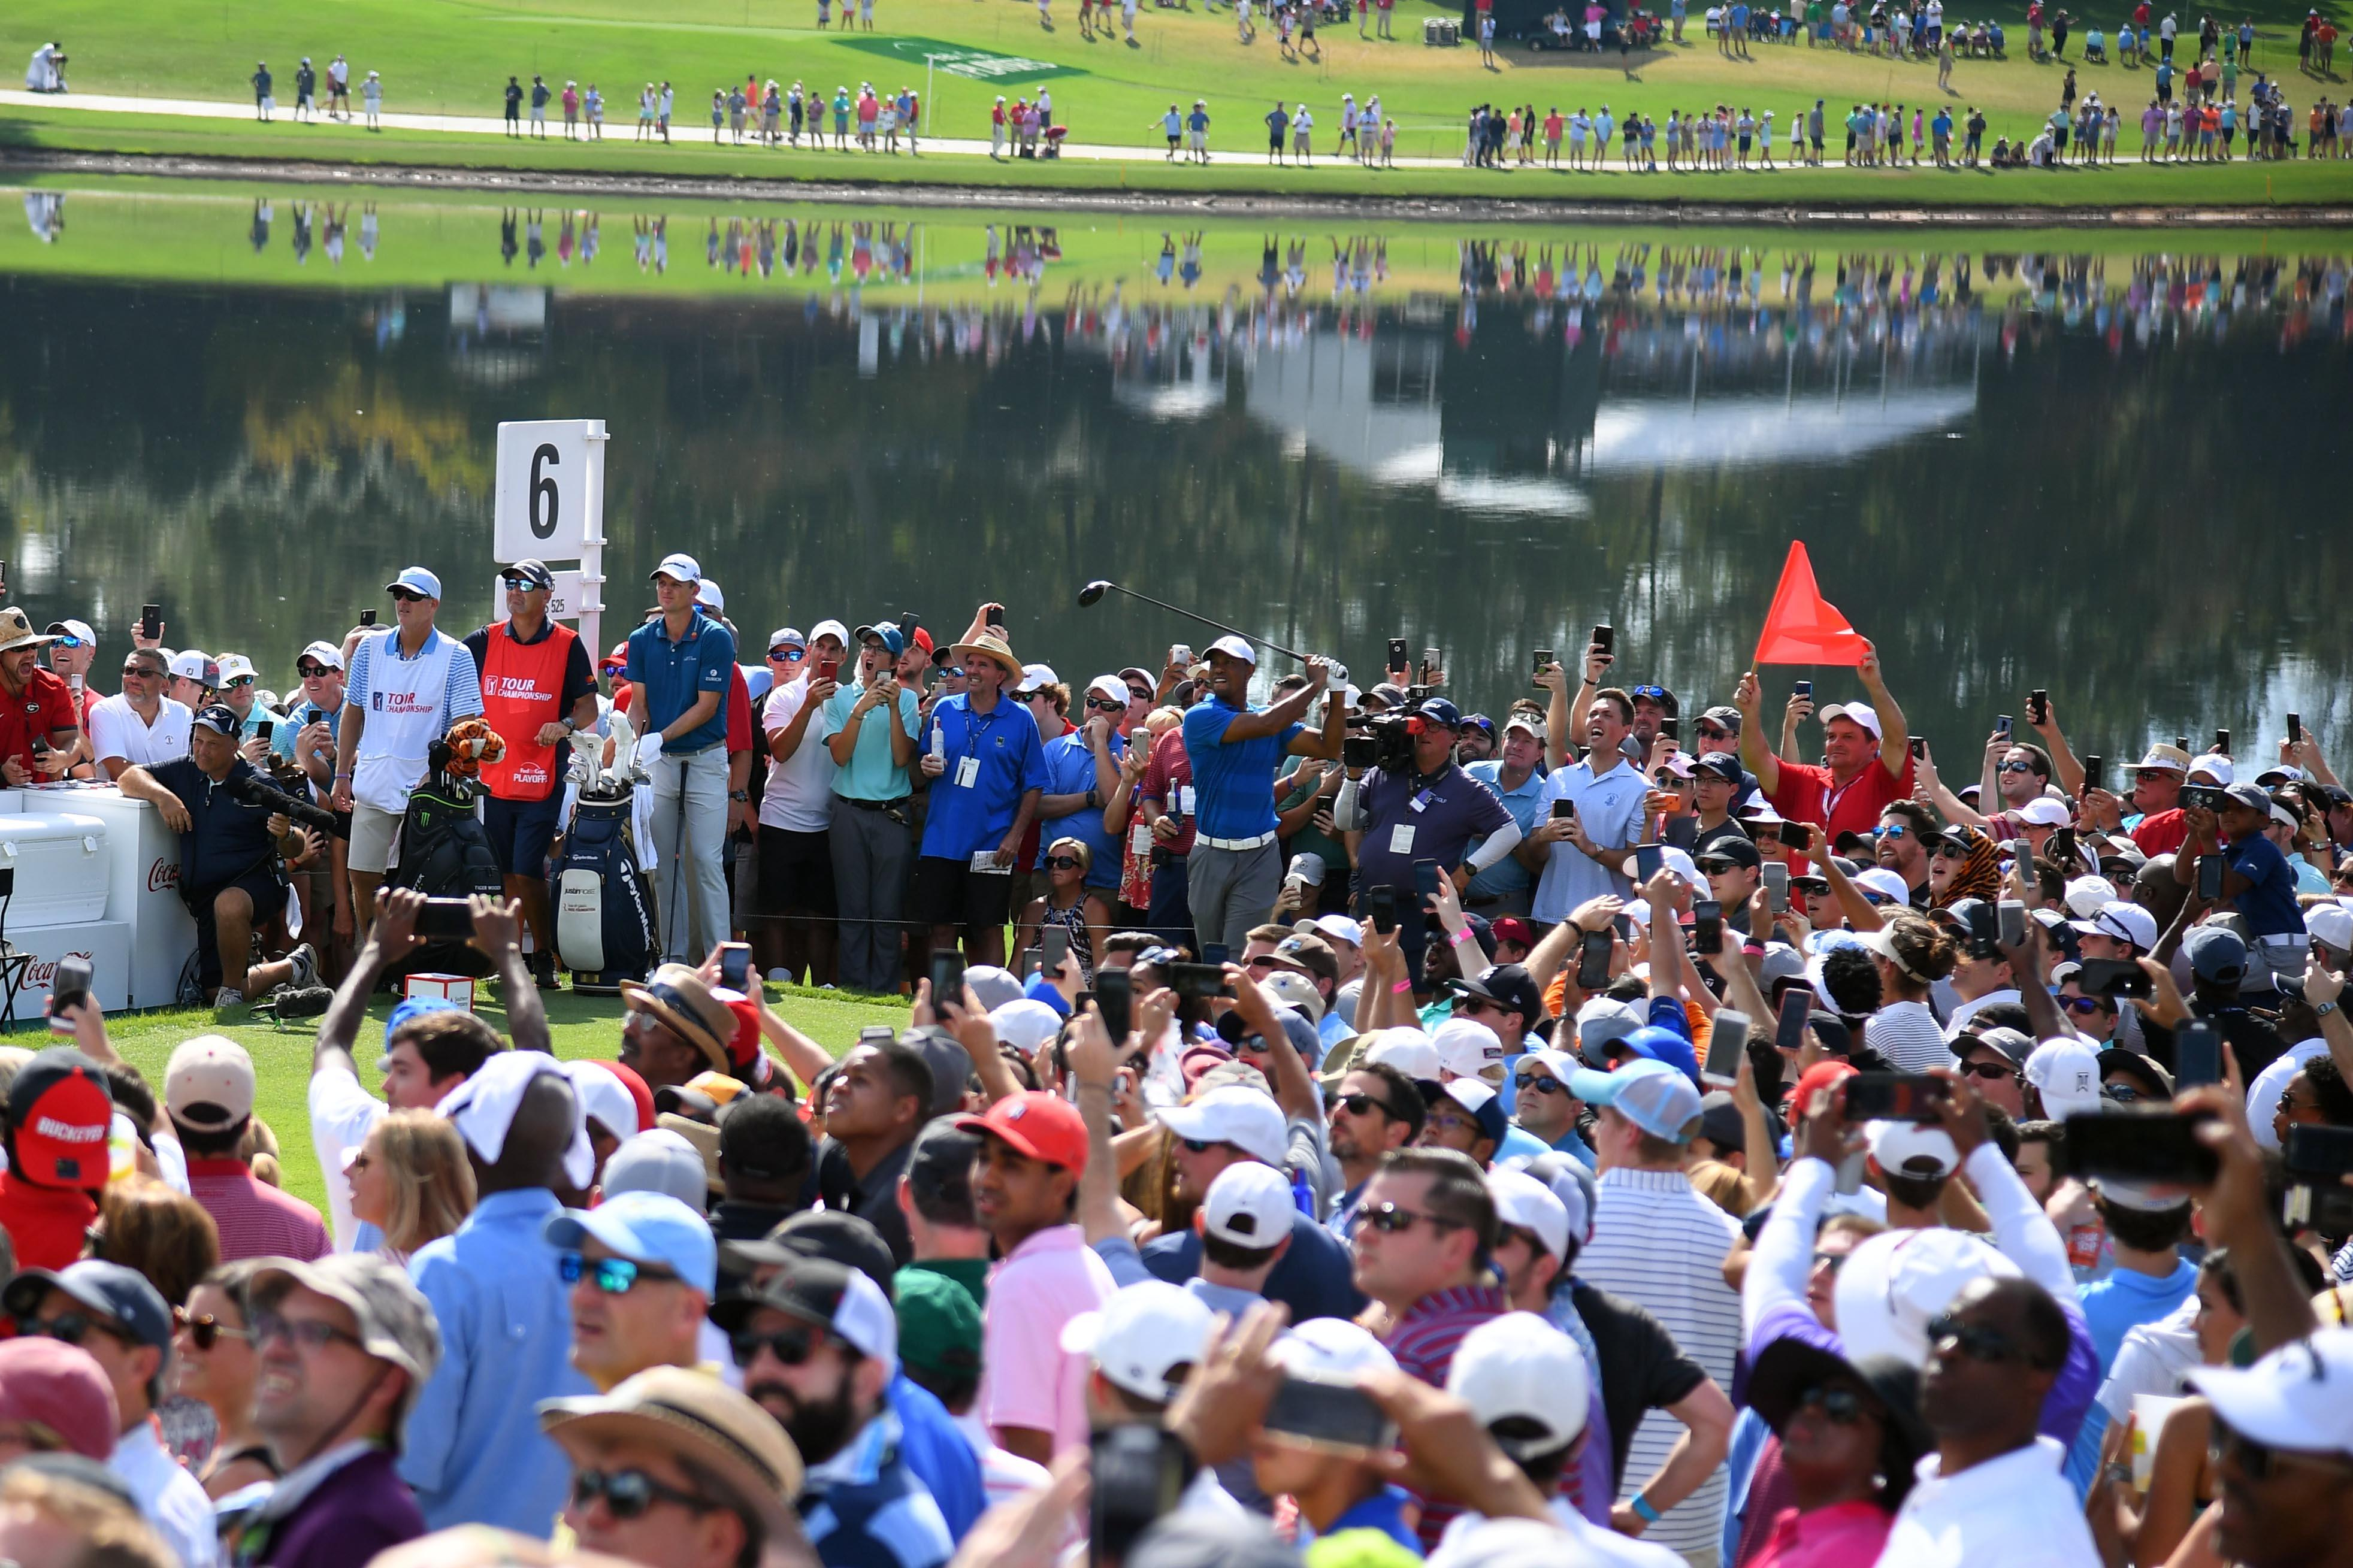 Tiger Woods attracted huge crowds as ever on Saturday